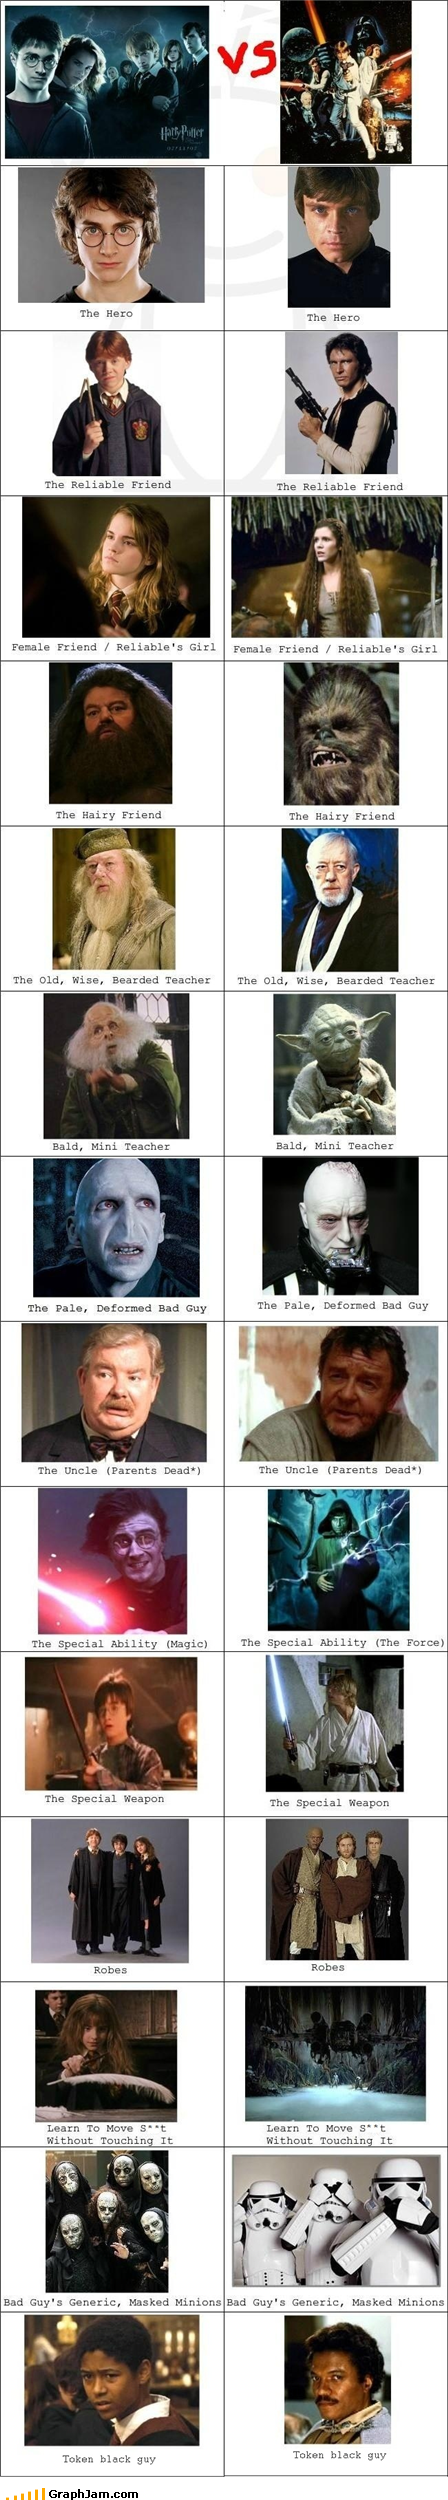 Harry Potter,star wars,versus